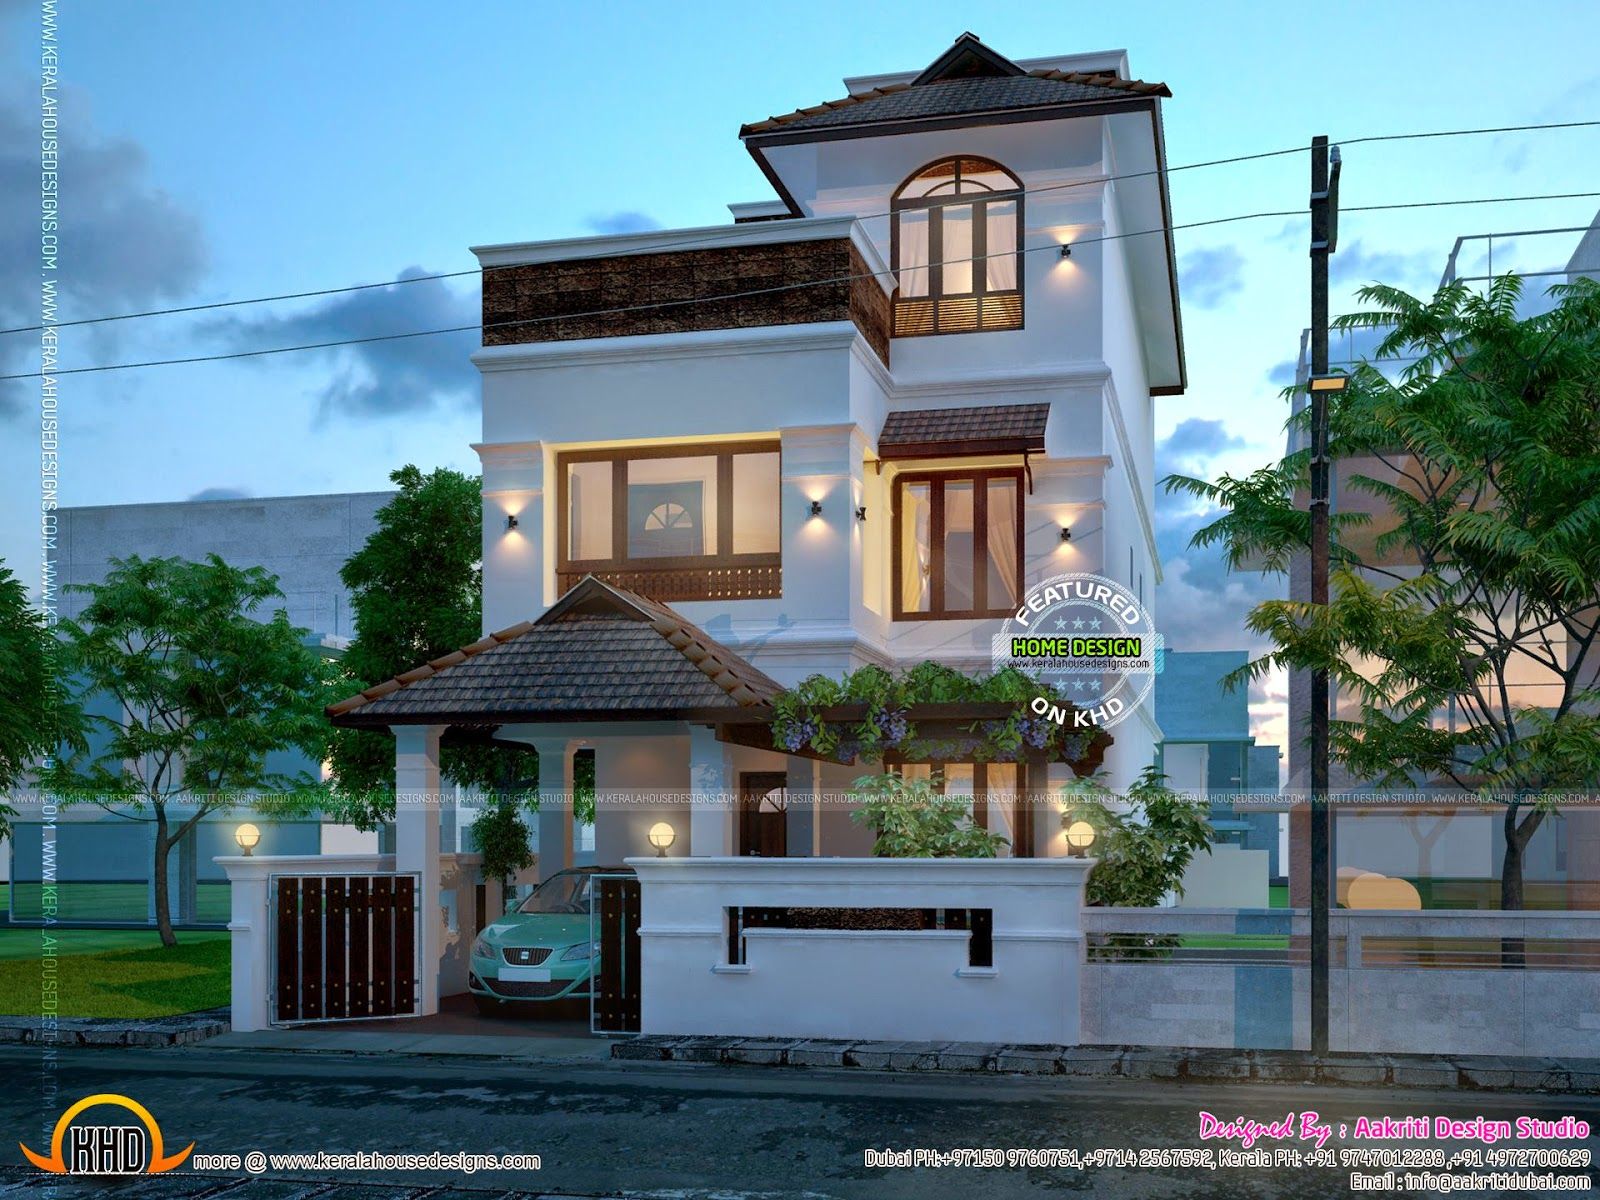 new house design - Home Design Images